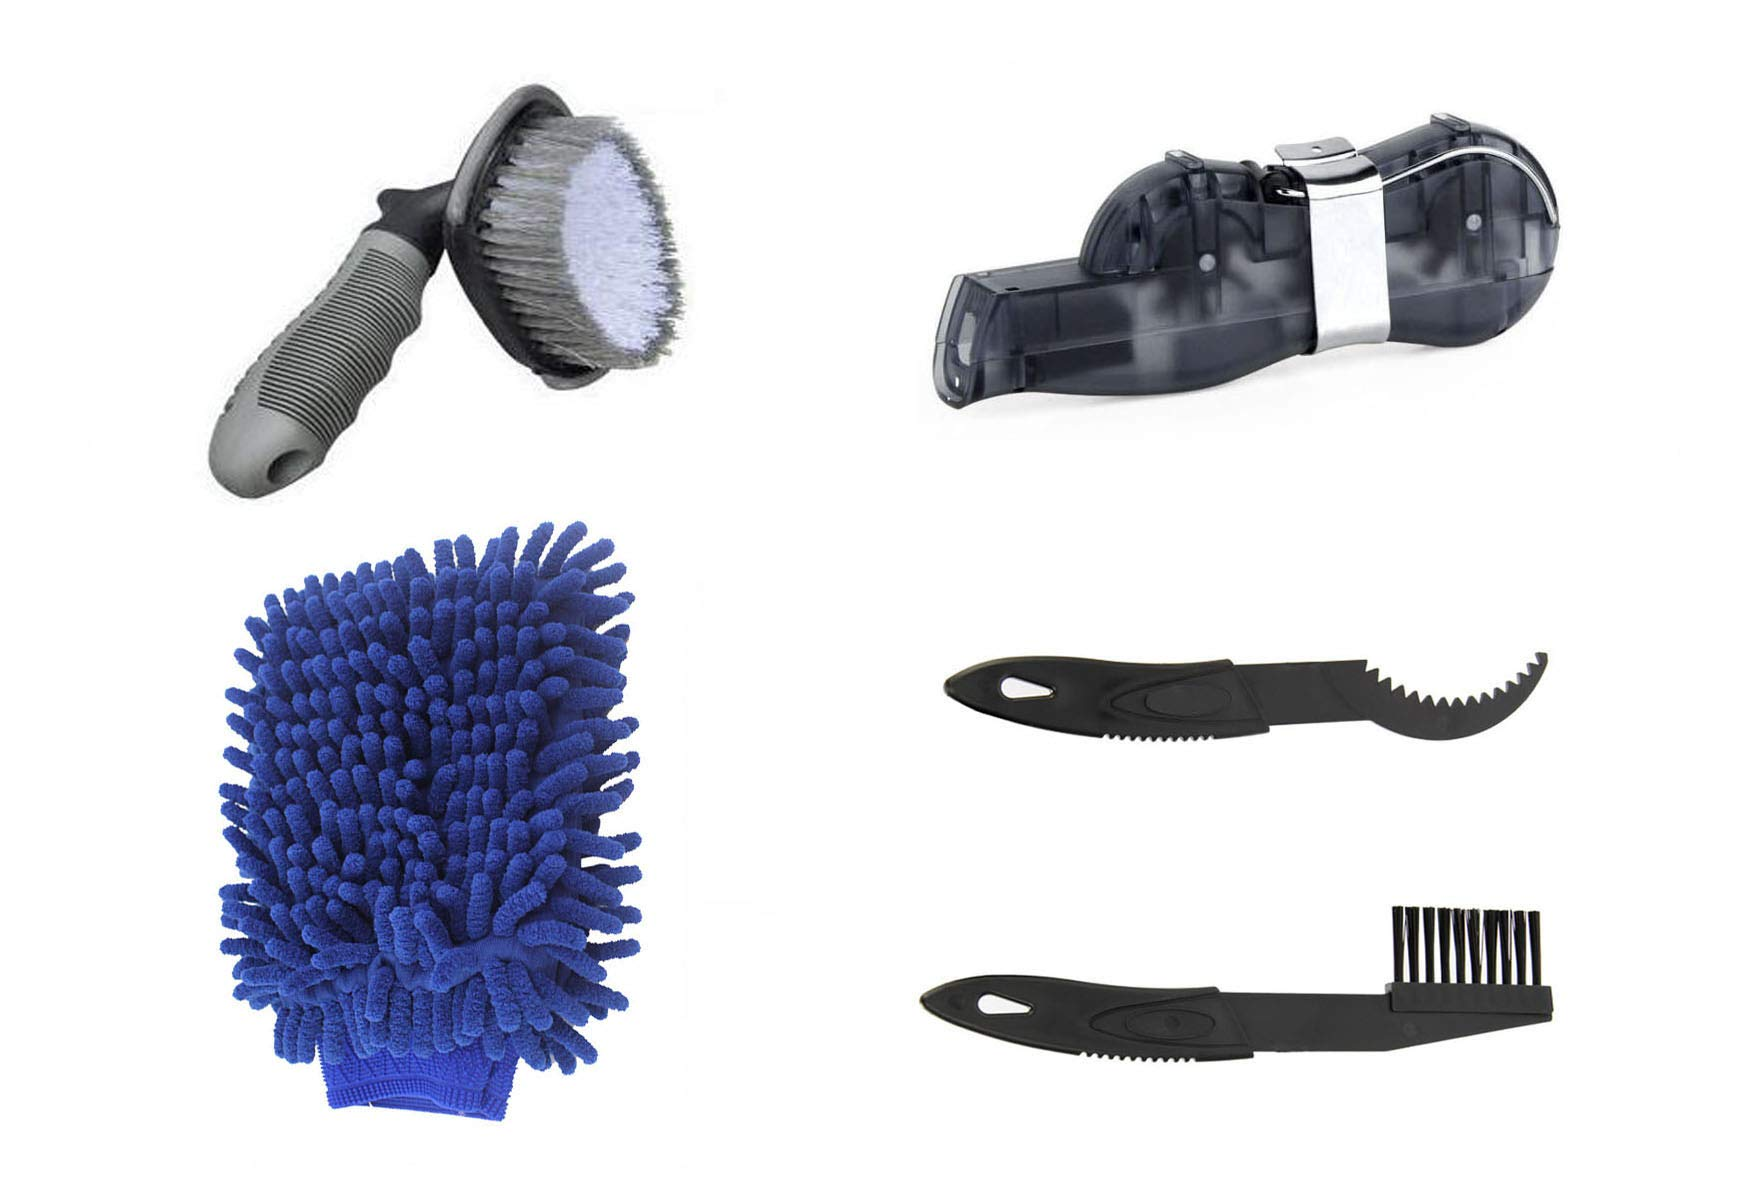 HAPTIME 5 Pcs Bike Bicycle Clean Brush Kit/Cleaning Tools for Bike Chain/Crank/Tire/Sprocket Cycling Corner Stain Dirt